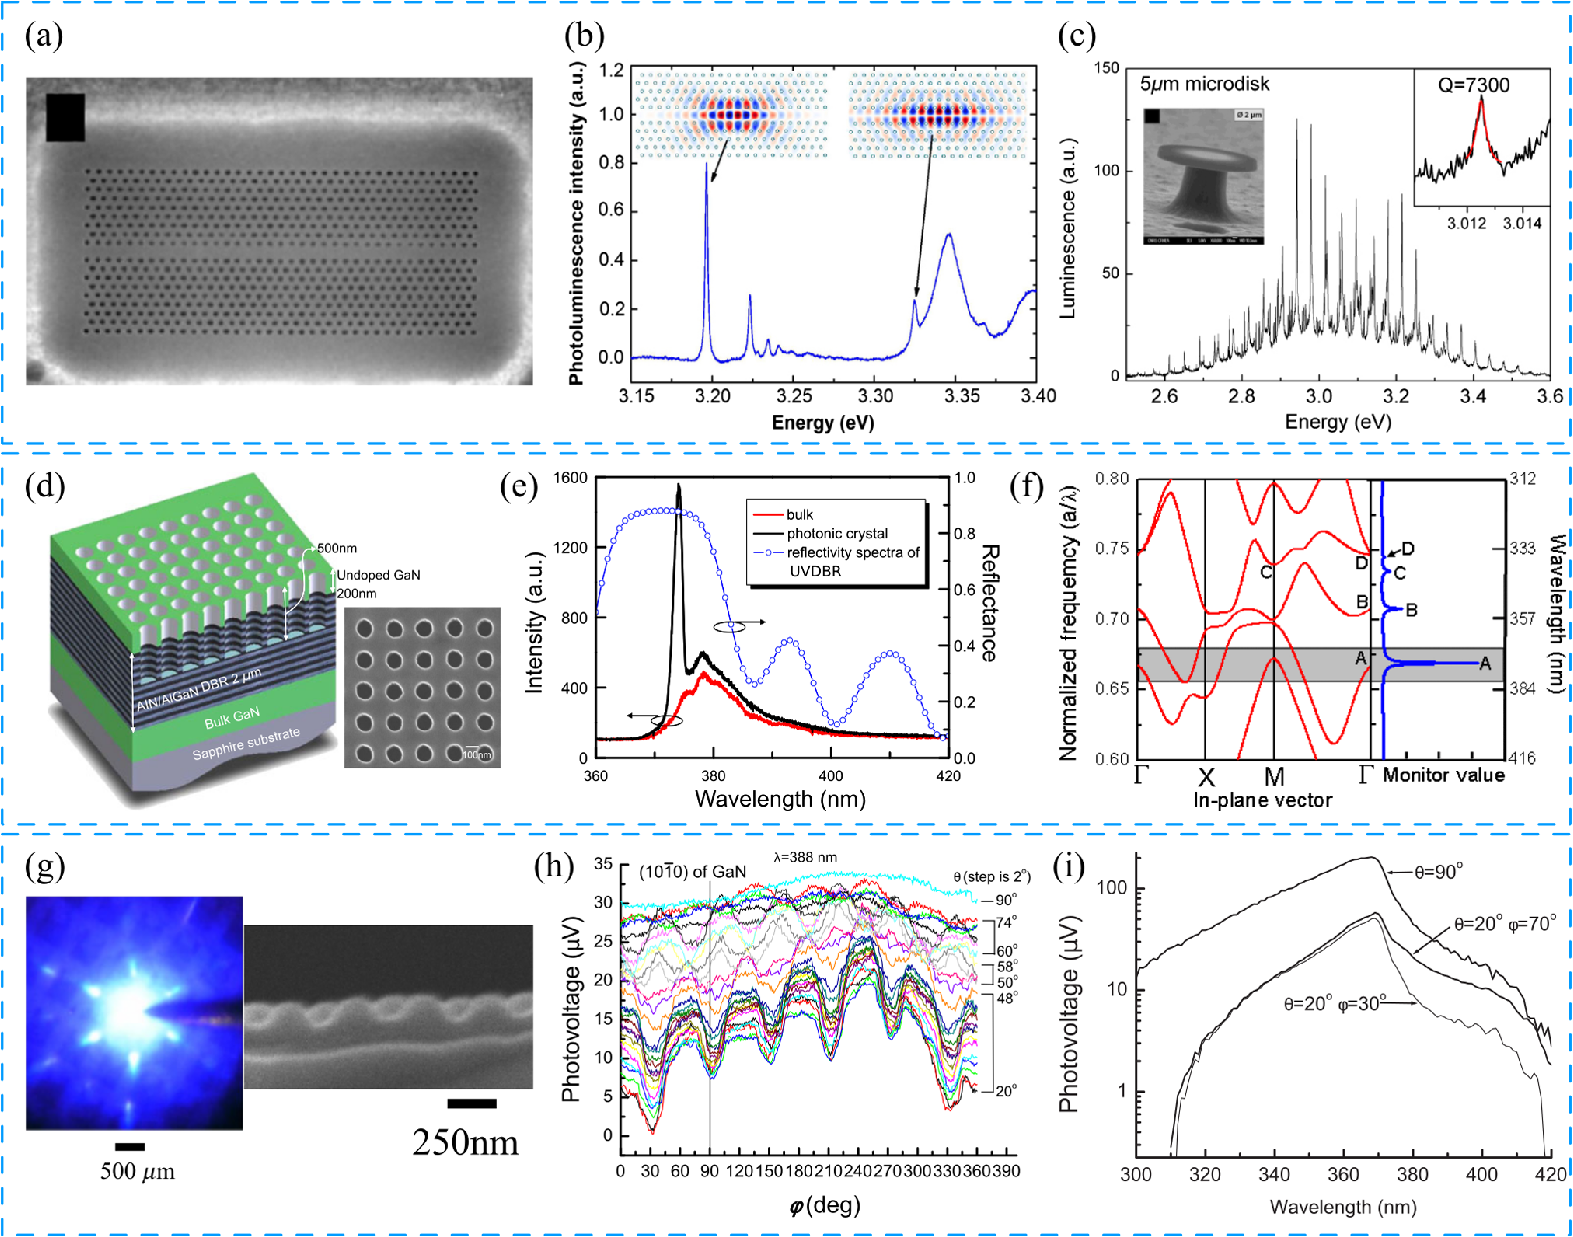 Review Of Nanophotonics Approaches Using Nanostructures And Light Laser Led Gt Circuits Traffic Lights For Games With I Photovoltage Versus Wavelength At Different Values Reproduced Permission From Ref